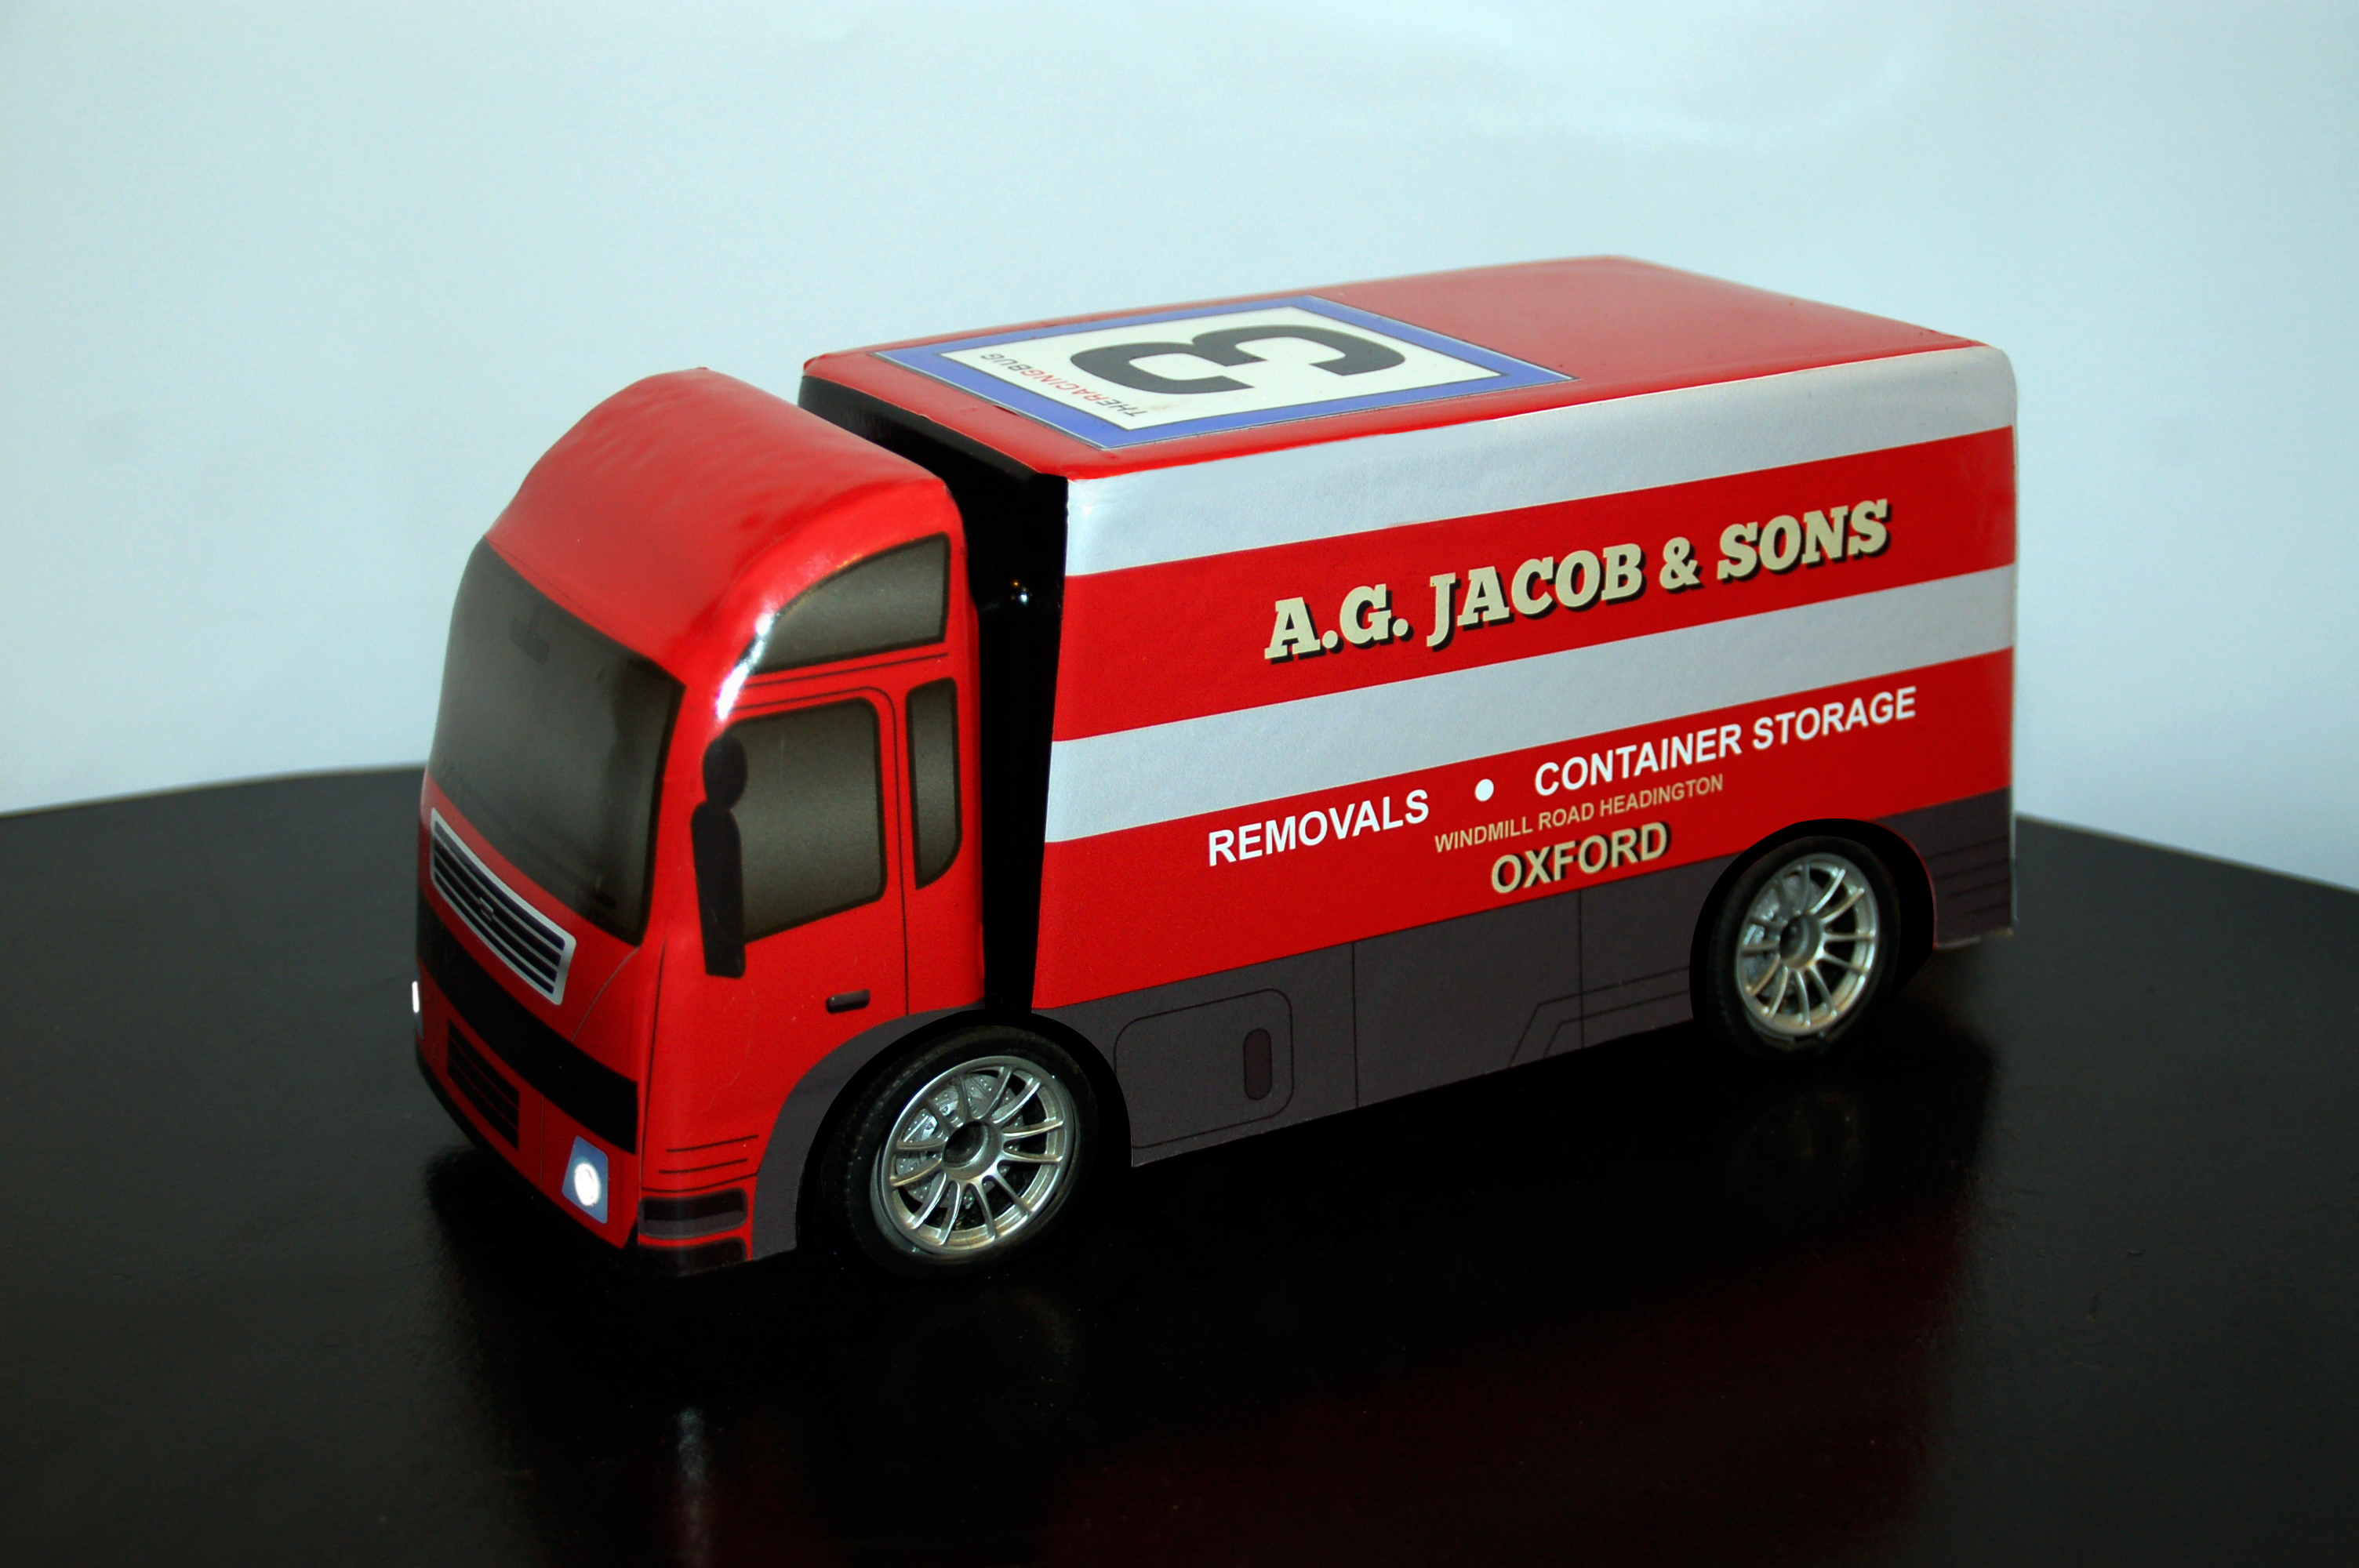 A.G. Jacob & Sons Truck